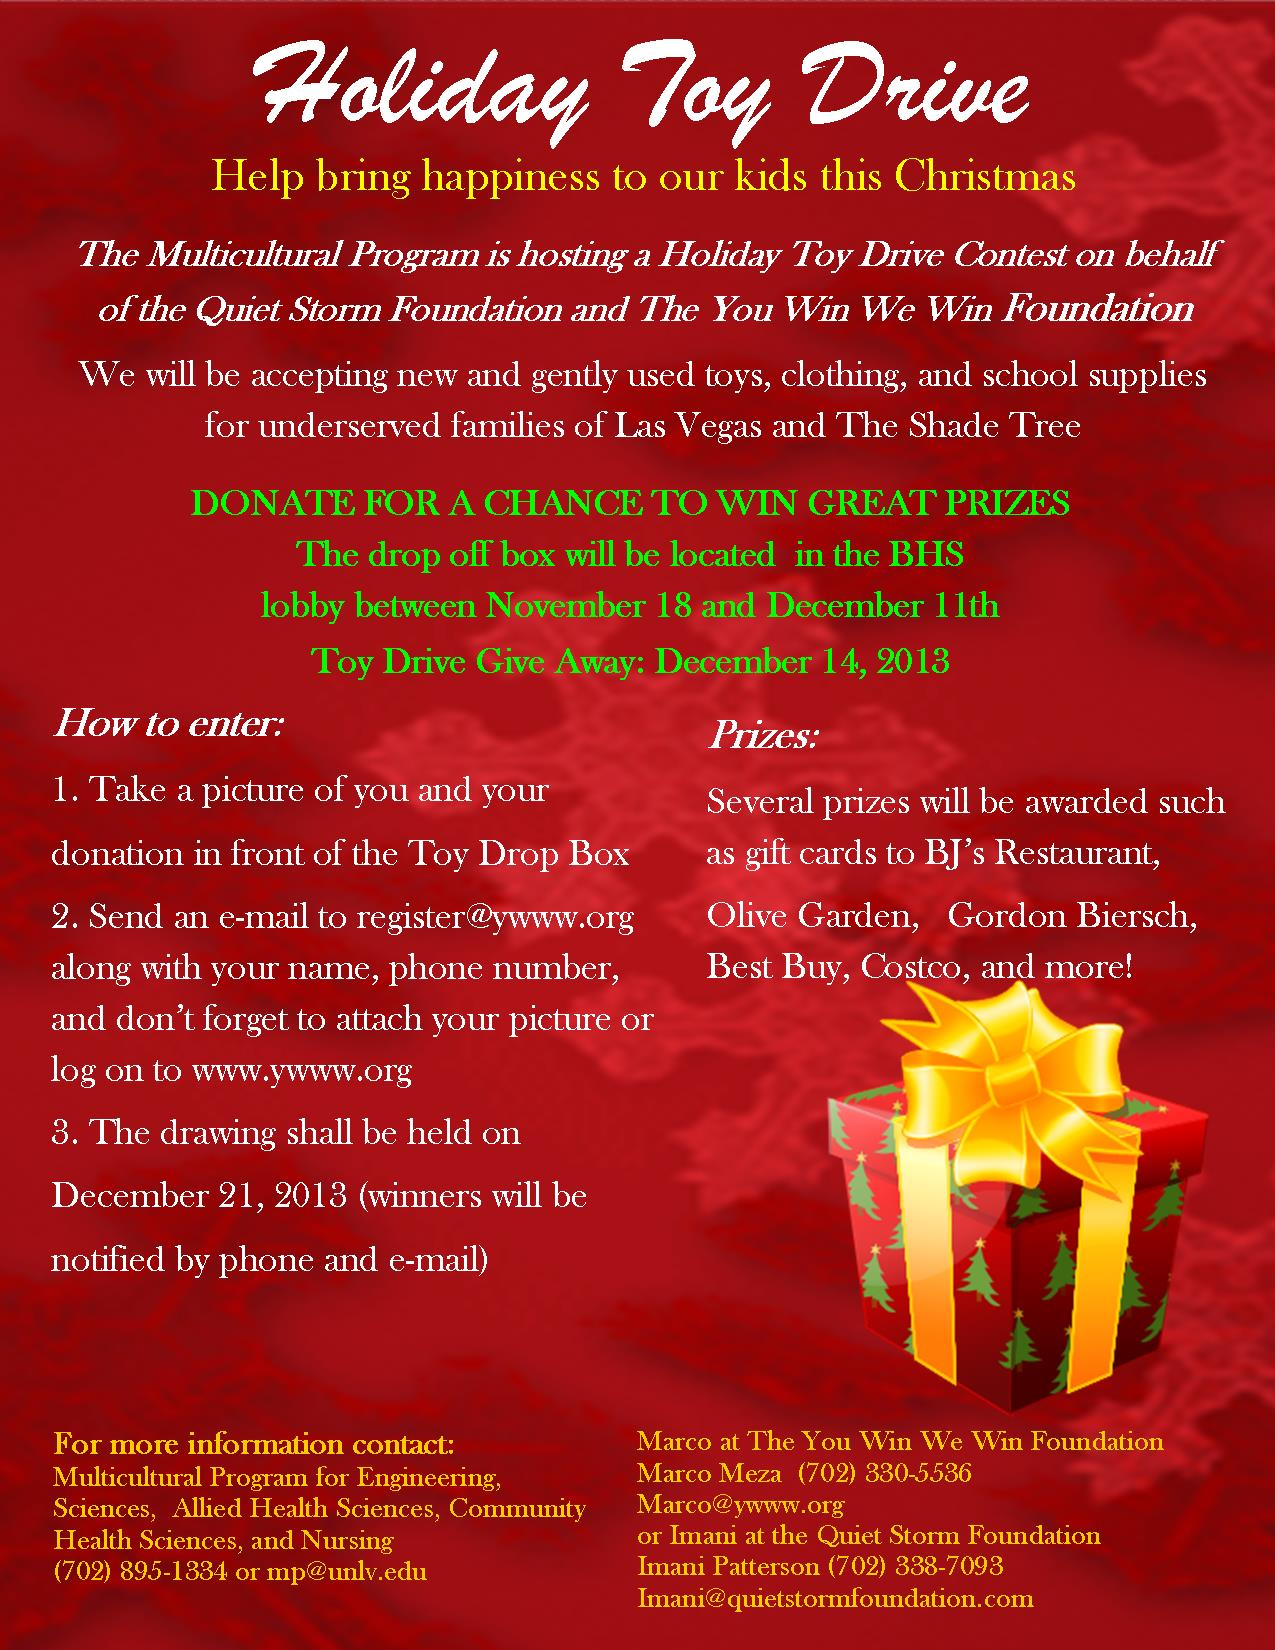 The Multiculural Program Holiday Toy Drive Contest